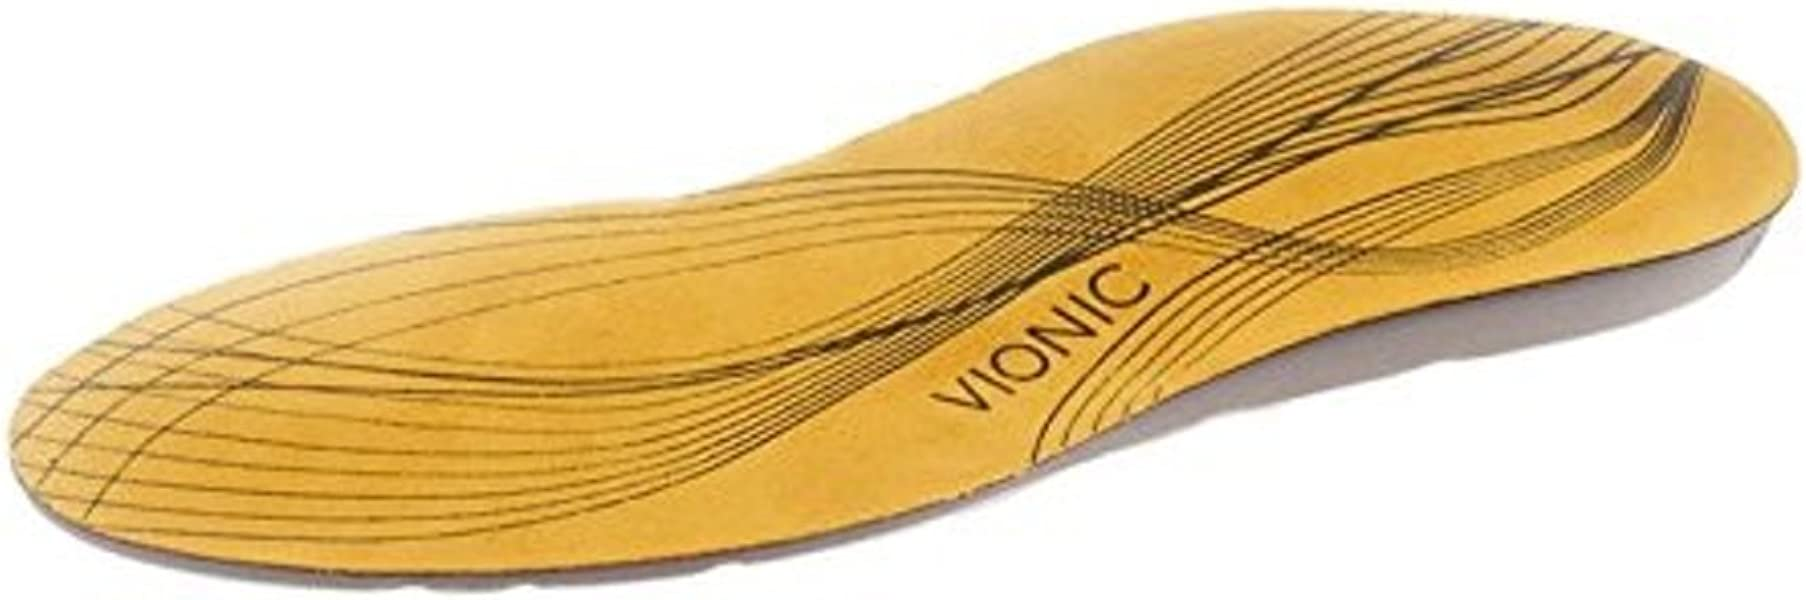 Patented Lateral Cutaway Vionic 3//4 Length Orthotics Takes Up Less Room/…